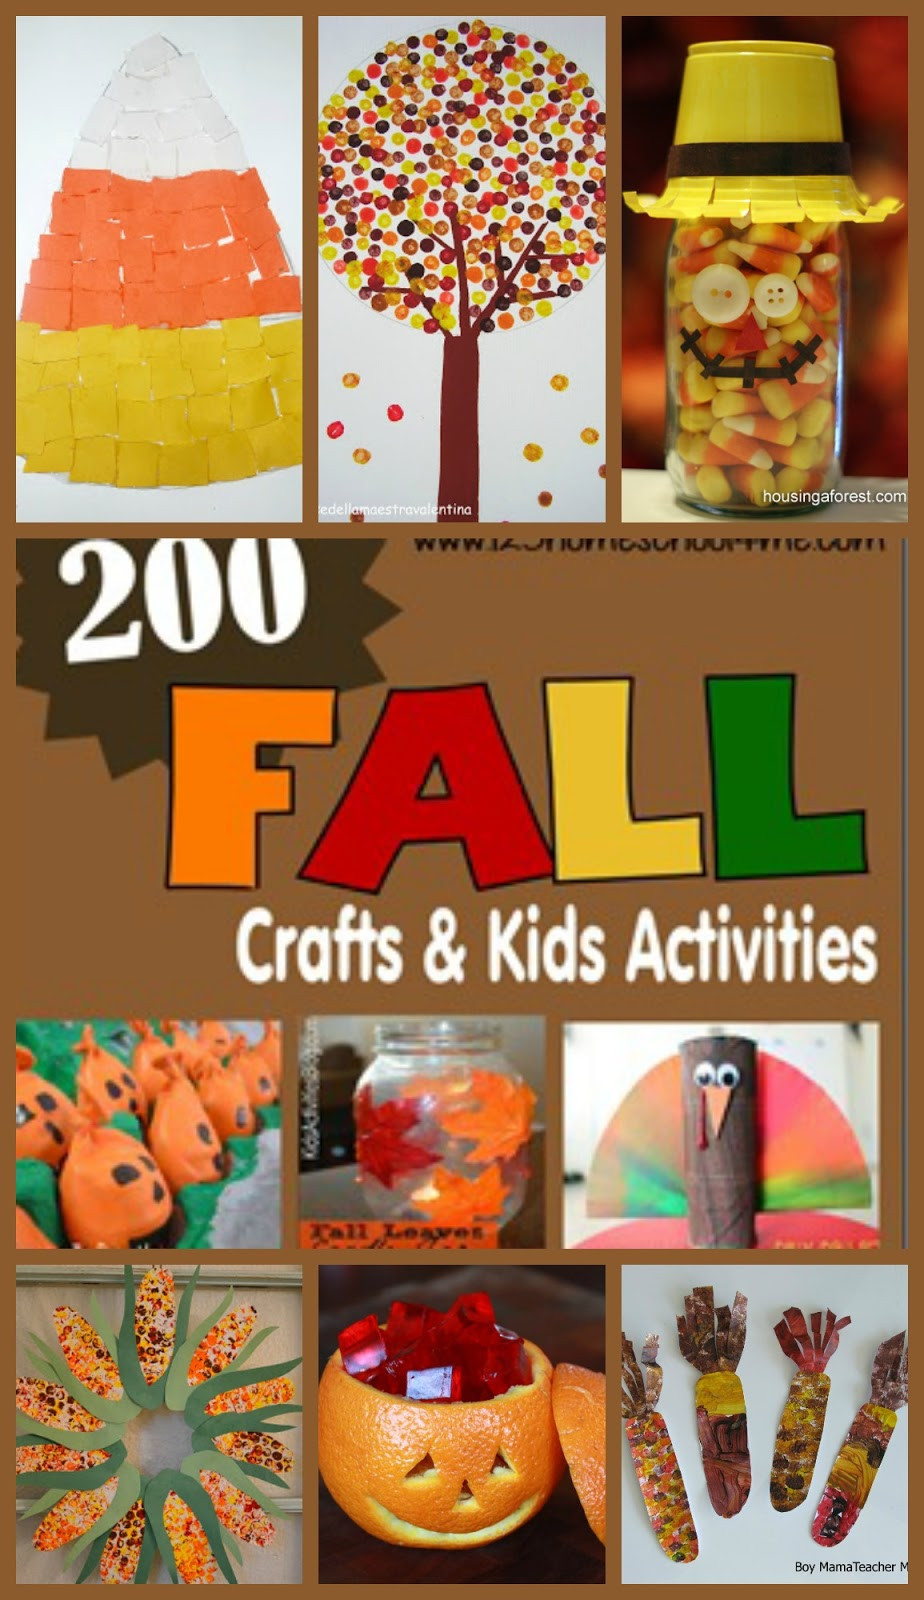 Fall Toddler Craft Ideas  200 Fall Crafts Kids Activities Printables and Snack Ideas